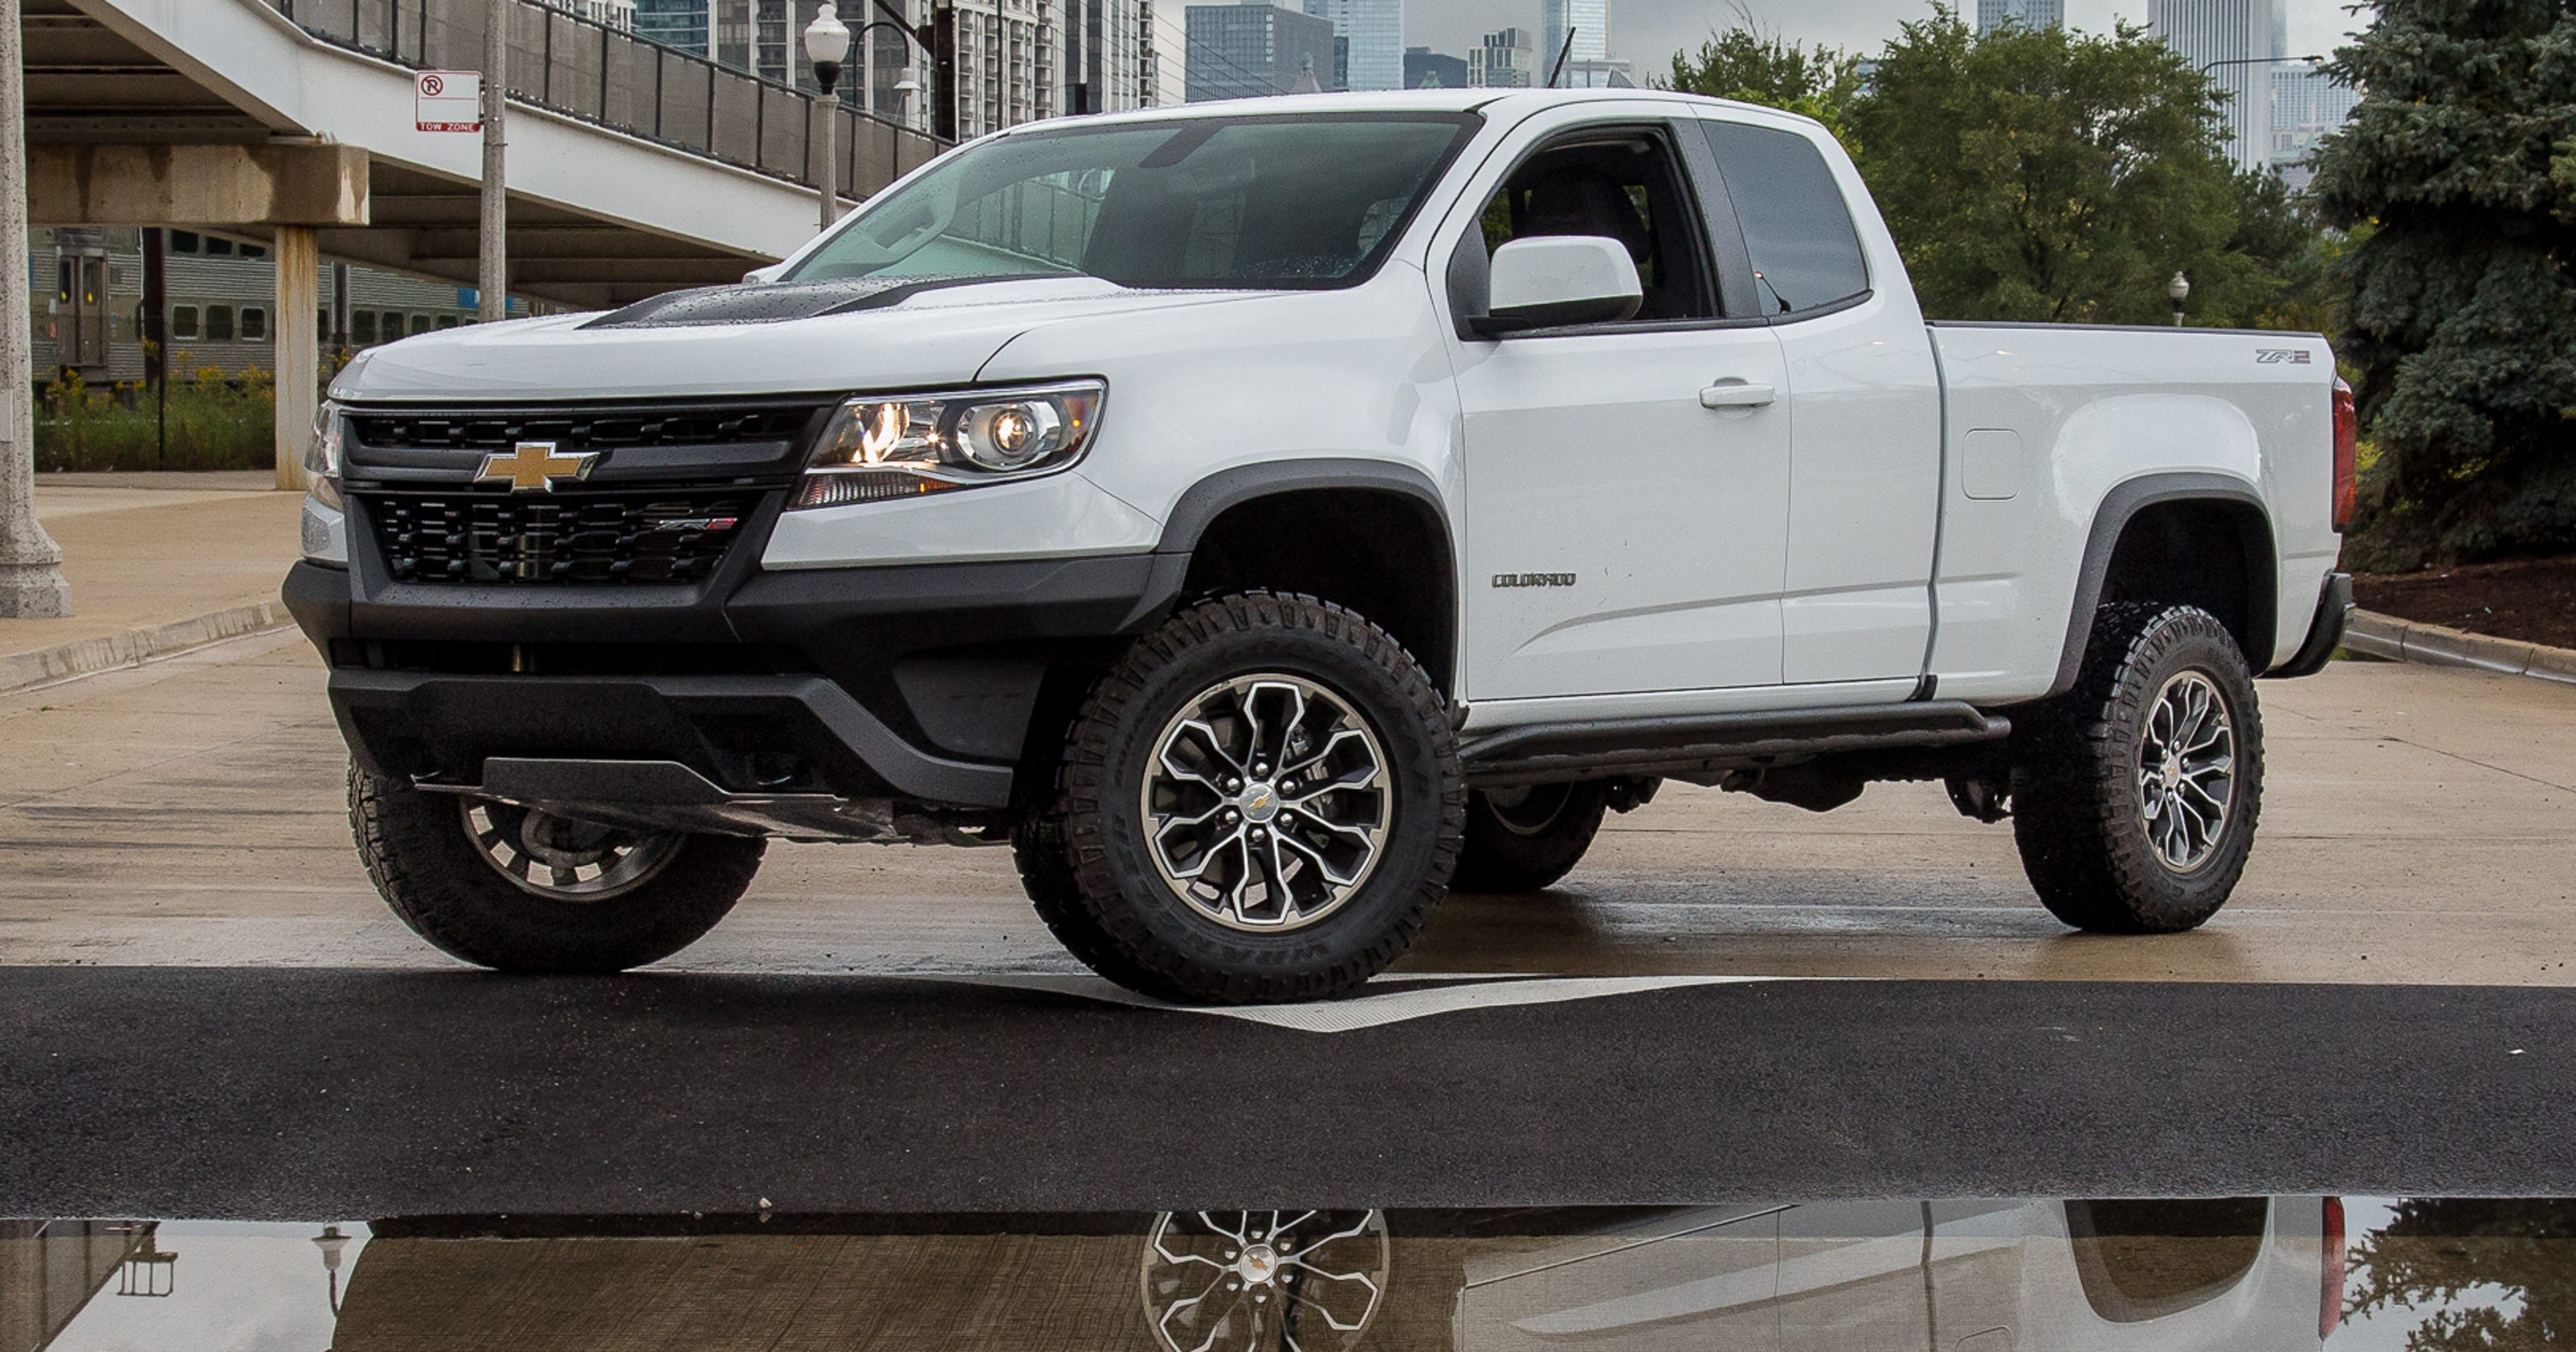 Review: Chevrolet Colorado ZR2 is off-road beast